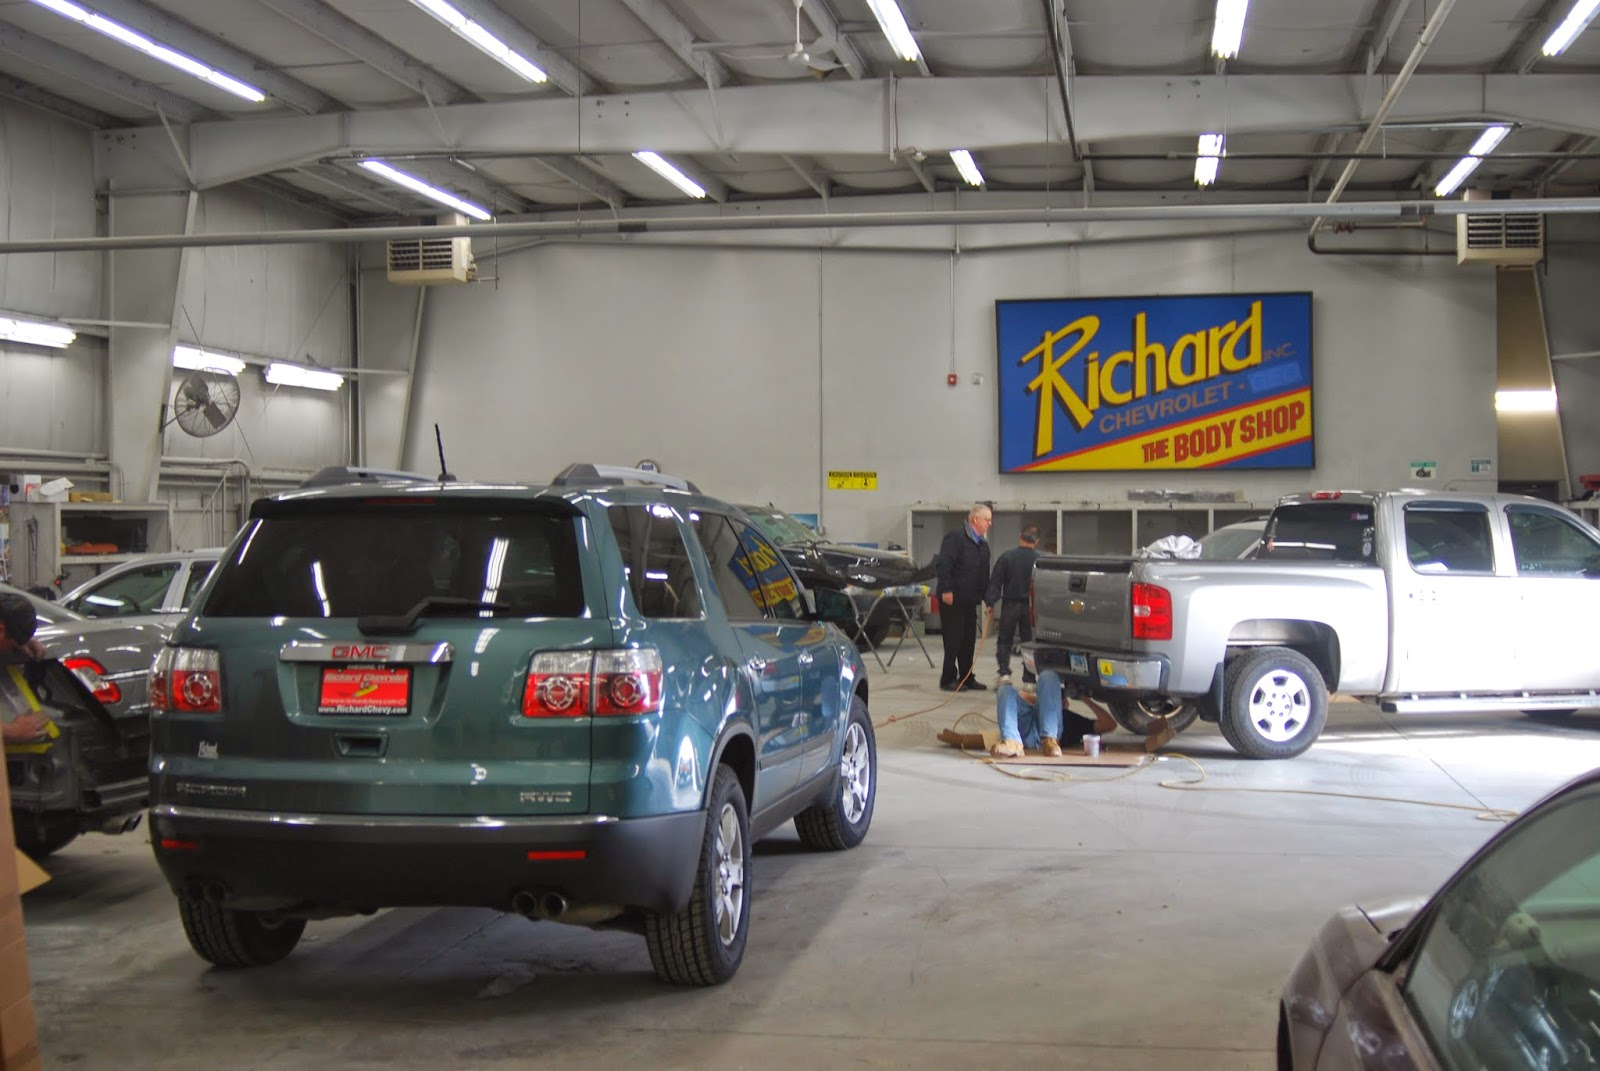 Richard Chevrolet Collision Center